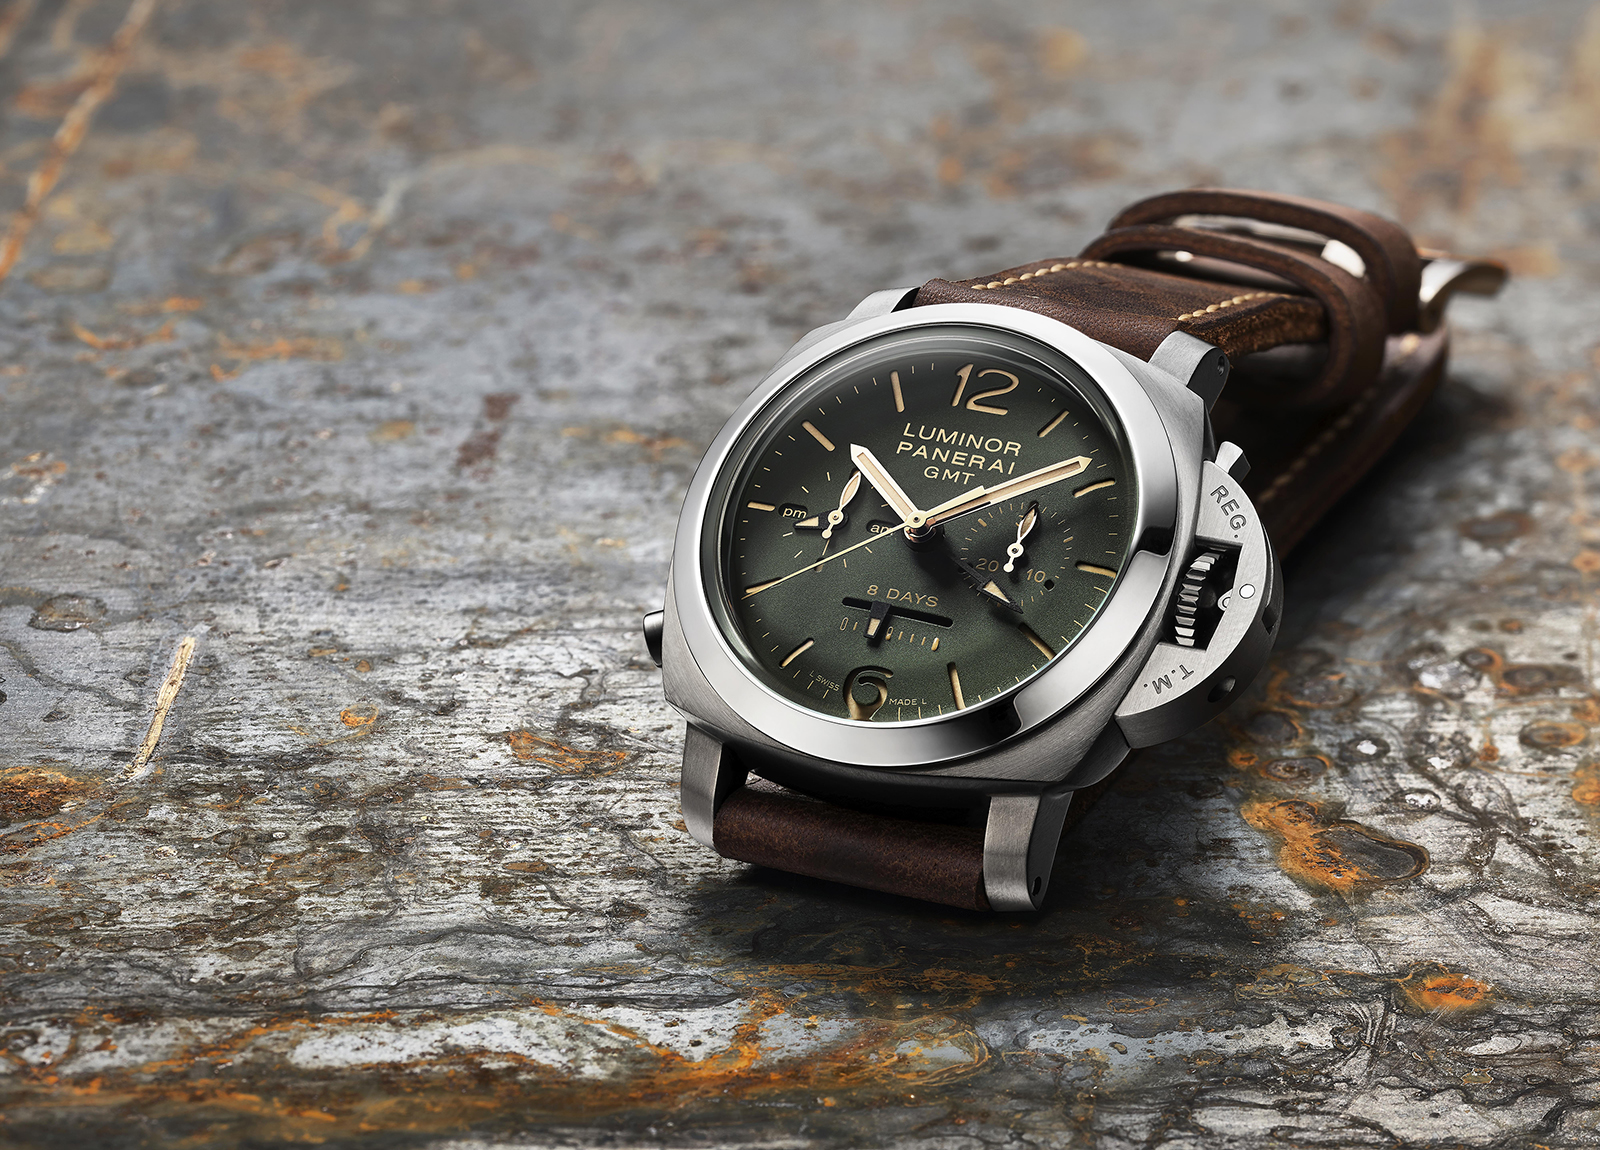 Panerai Luminor 1950 Chrono Monopulsante 8 Days GMT Green Dial - 44 mm - PAM737